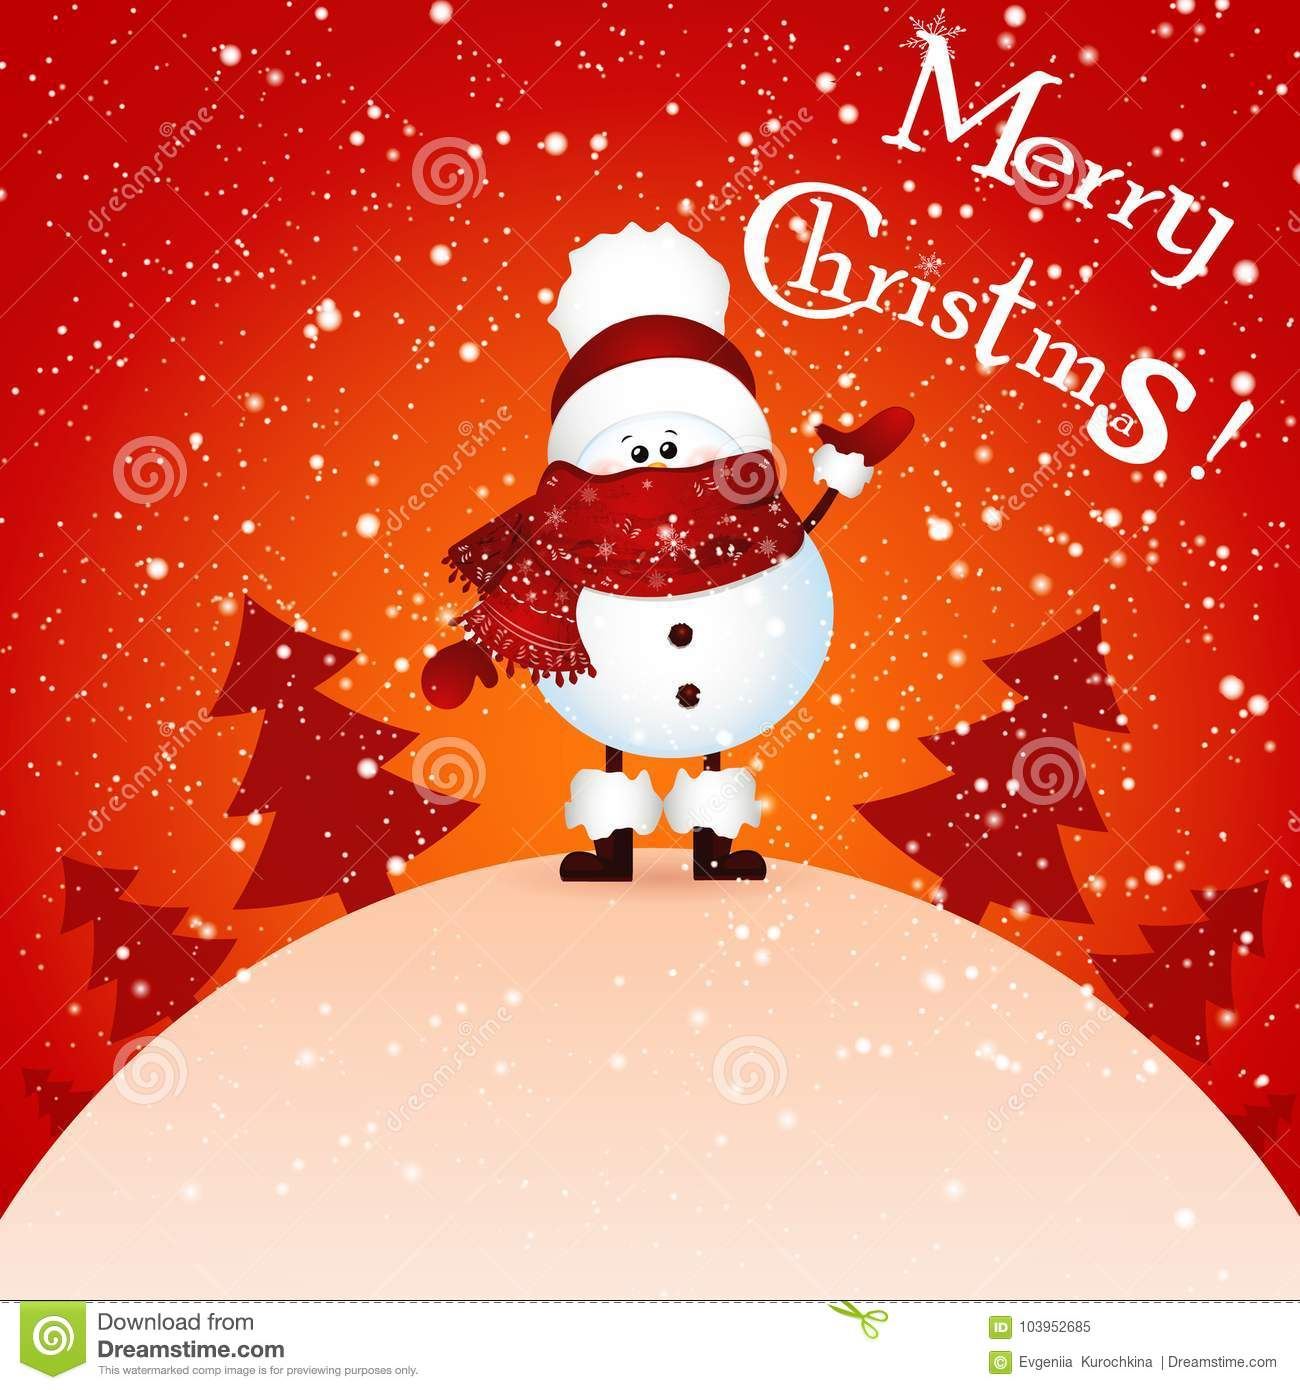 cute snowman holds banner merry christmas and happy new year and christmas tree stock illustration illustration of character scene 103952685 https www dreamstime com cute snowman holds banner merry christmas happy new year tree white background world greeting card cartoon illustration image103952685